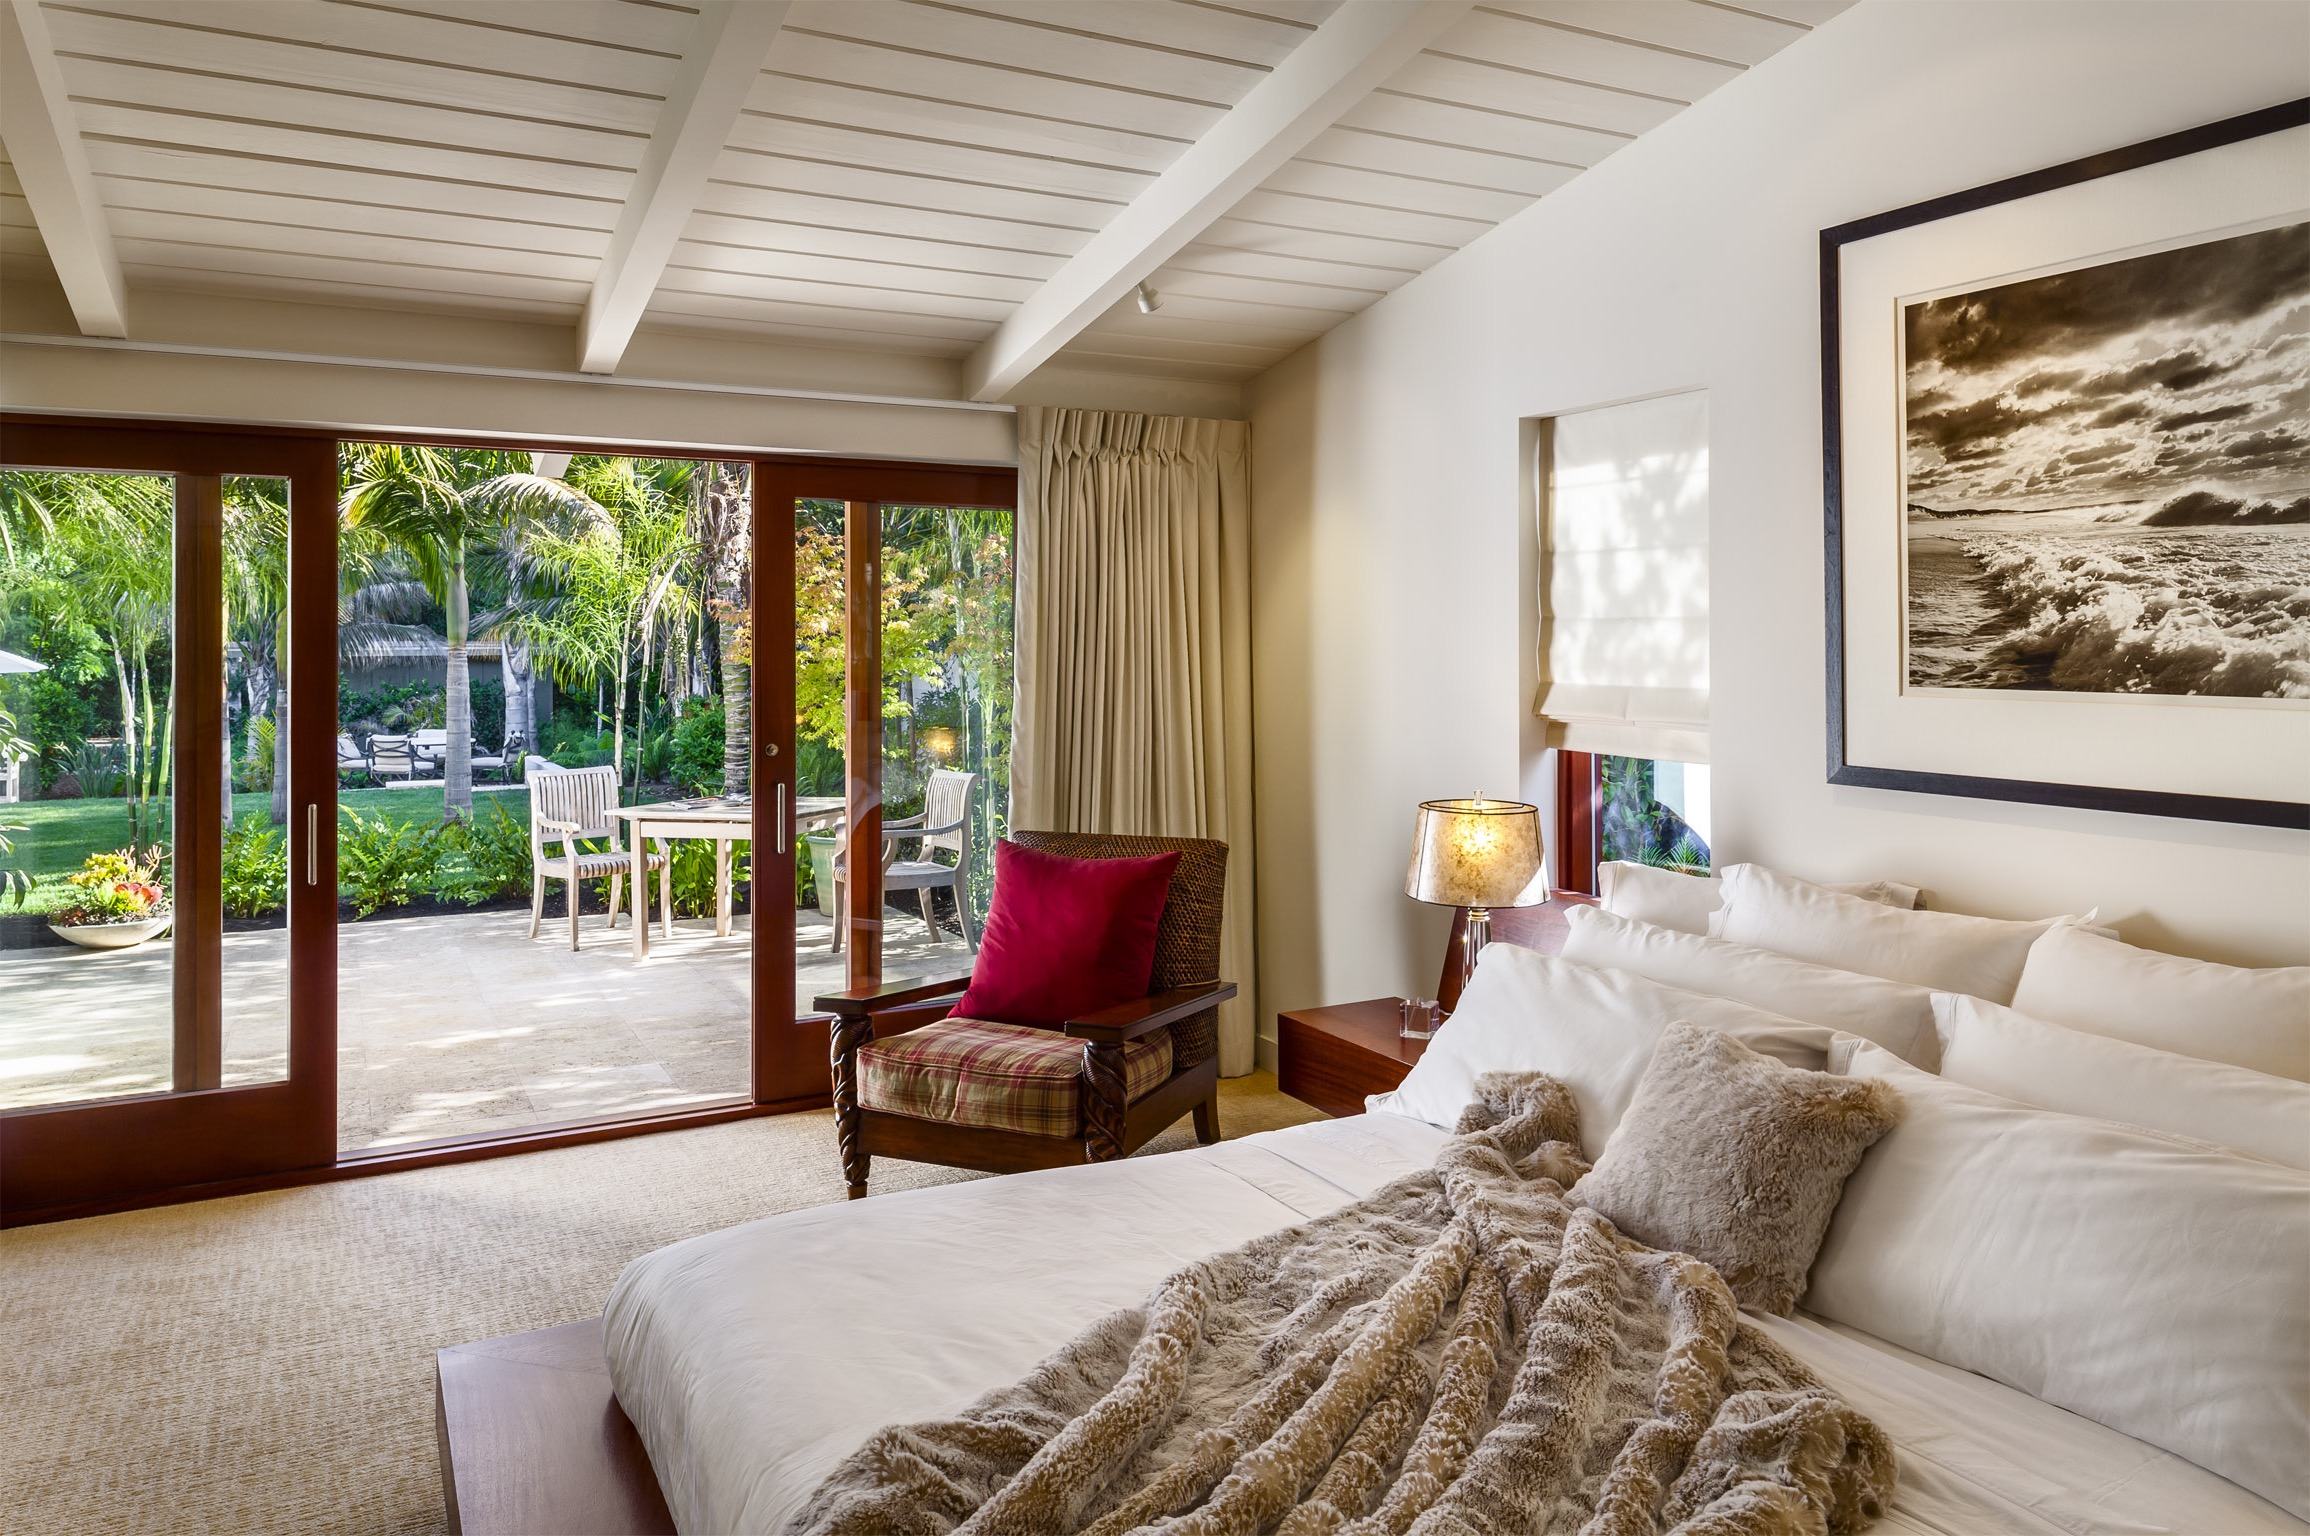 Contemporary Sliding Glass Door For Modern Tropical Bedroom With Outdoor Patio Access (Image 3 of 13)